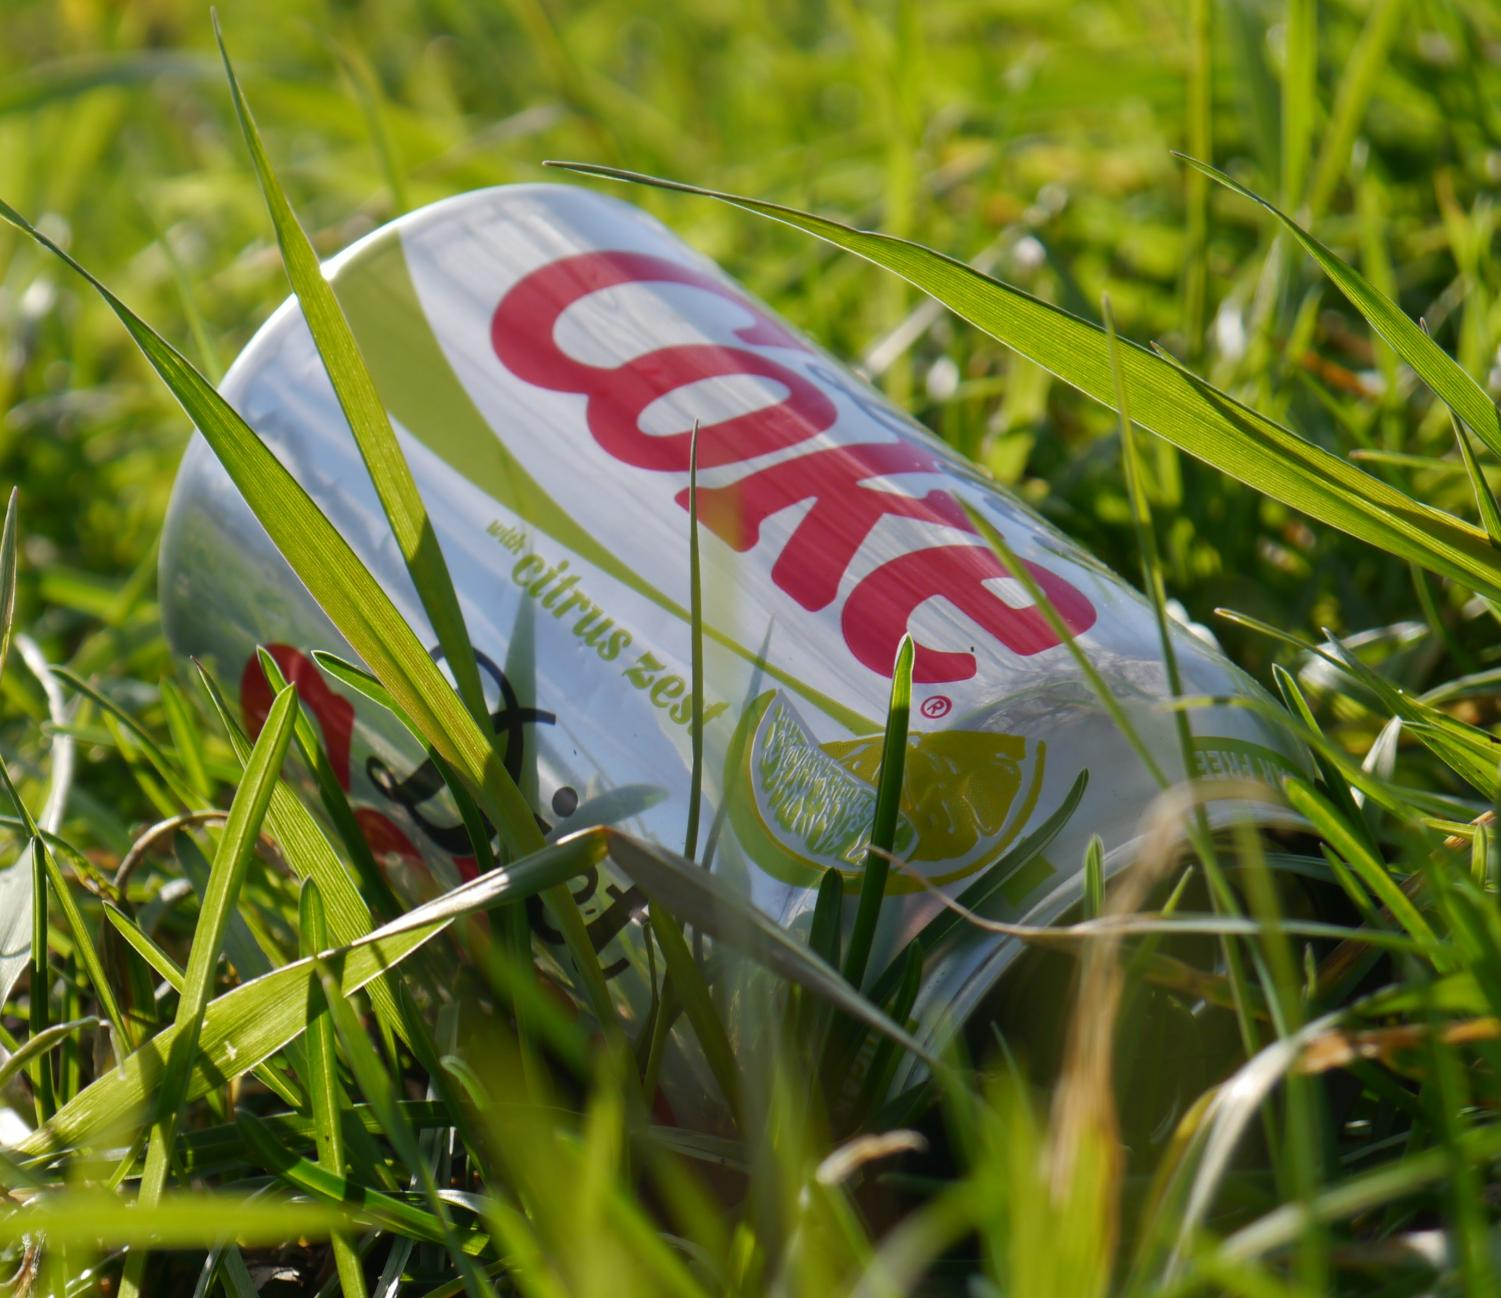 A Coca-Cola can found outside in the grass from littering.